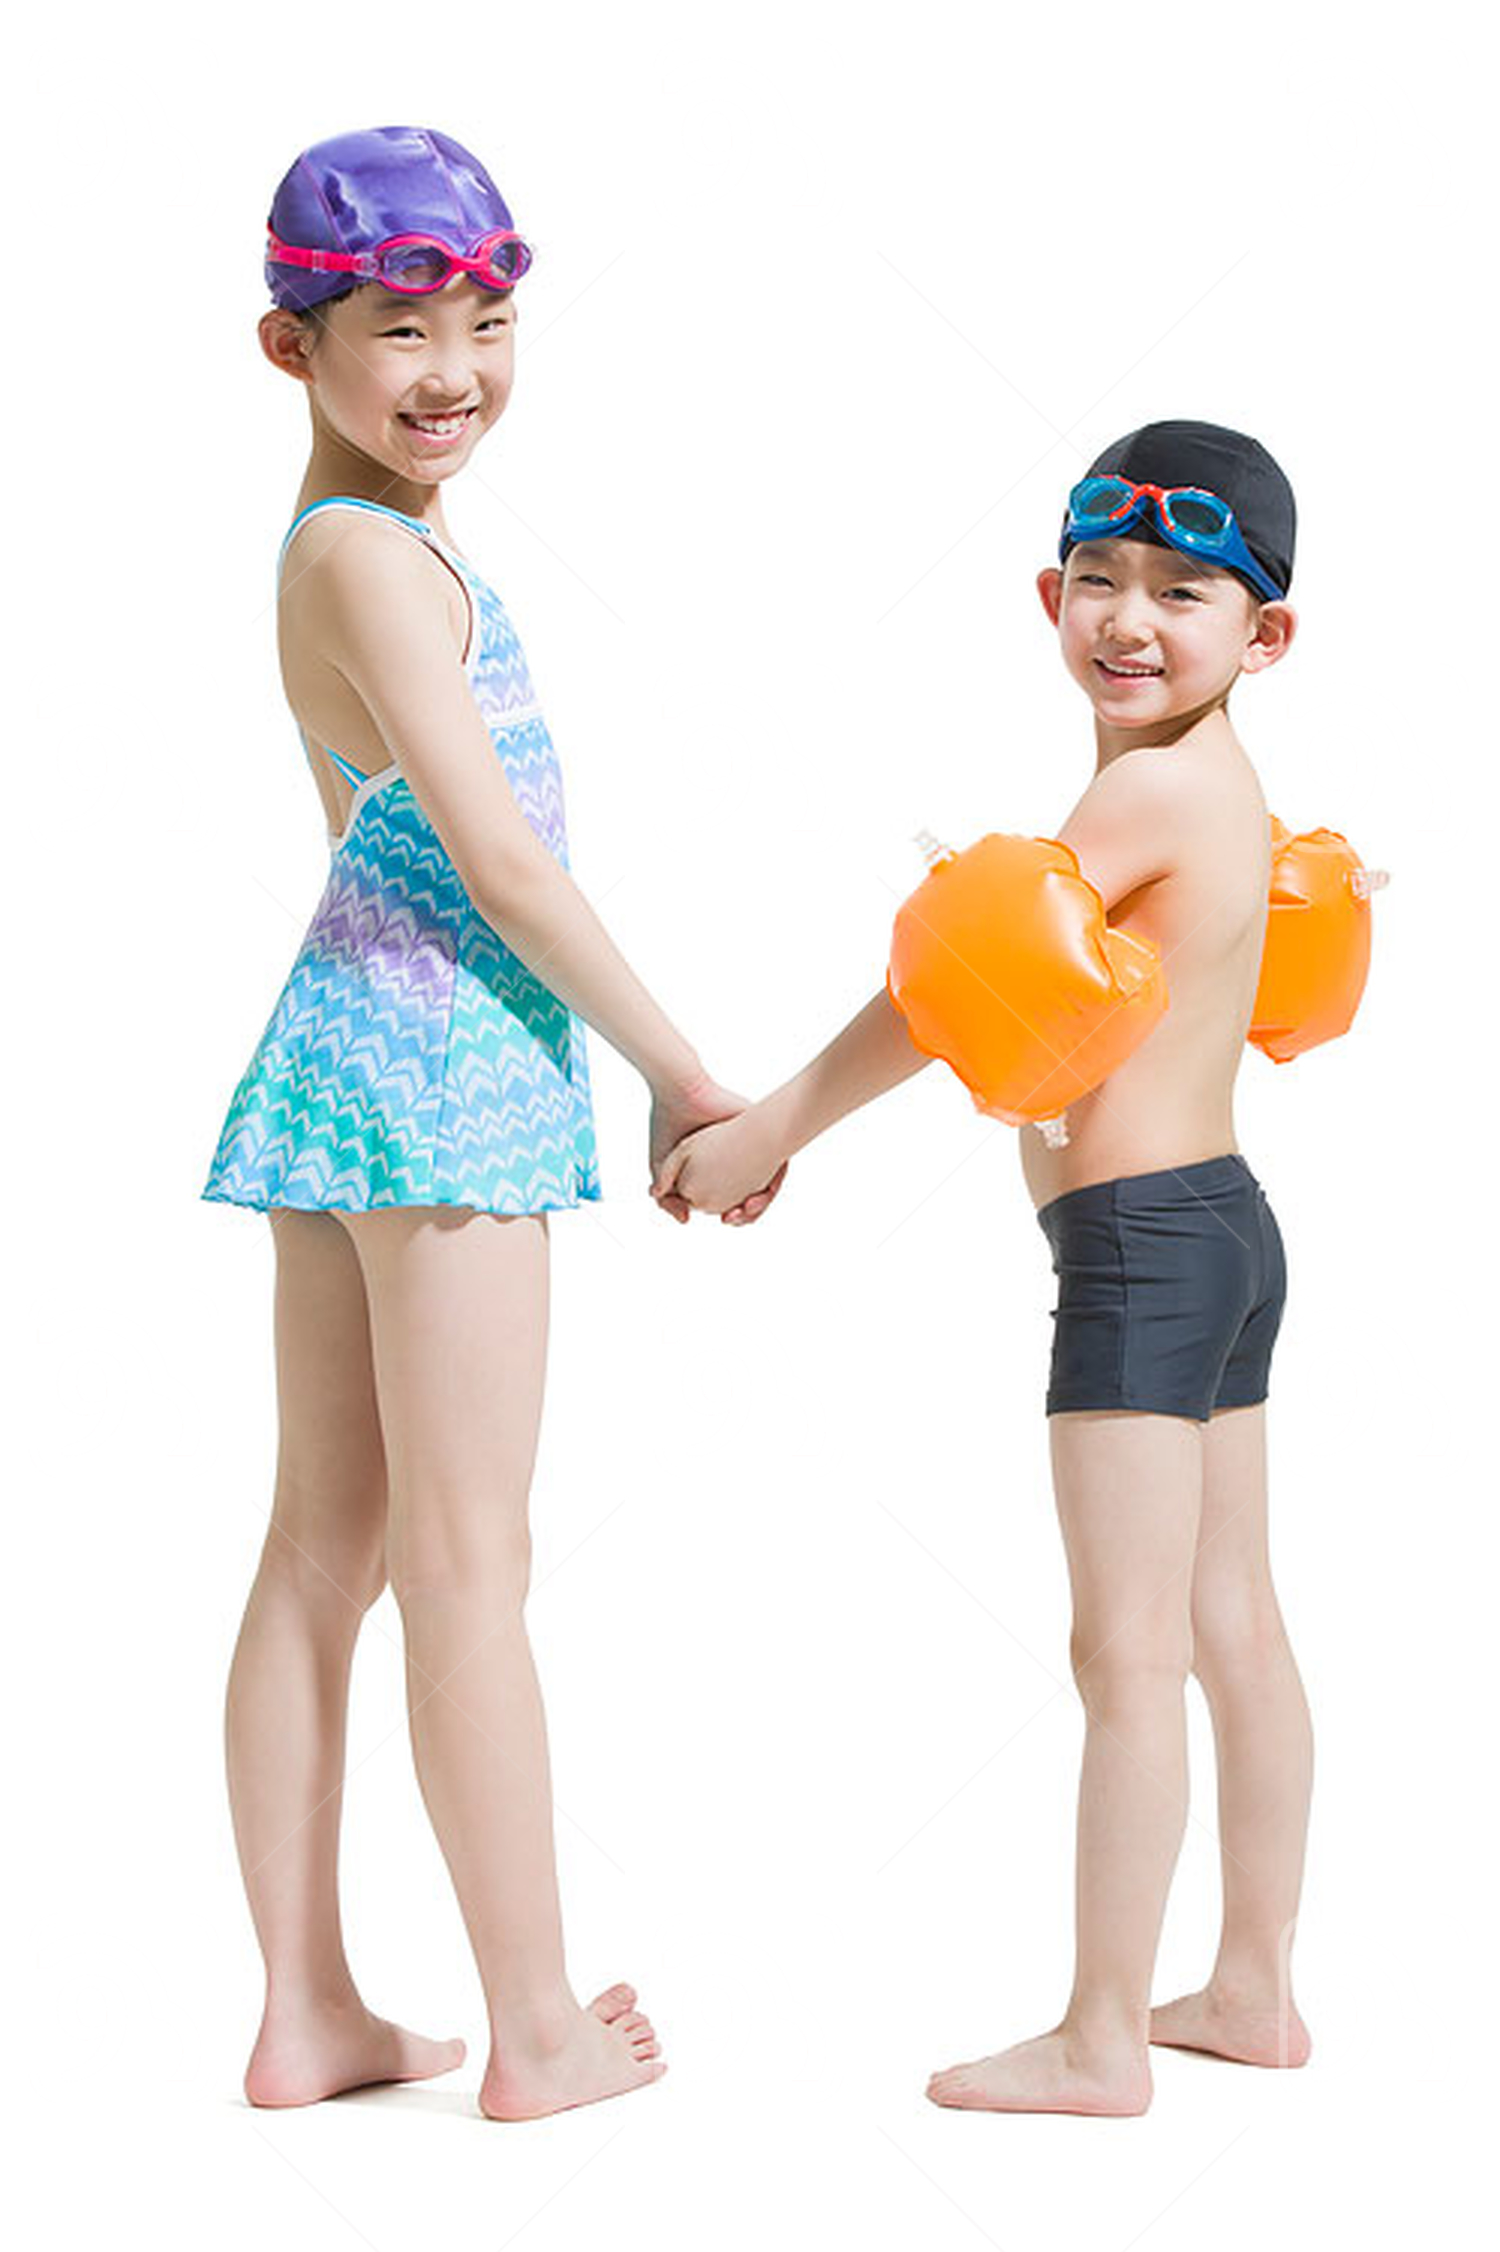 Cute Chinese children in swimsuit